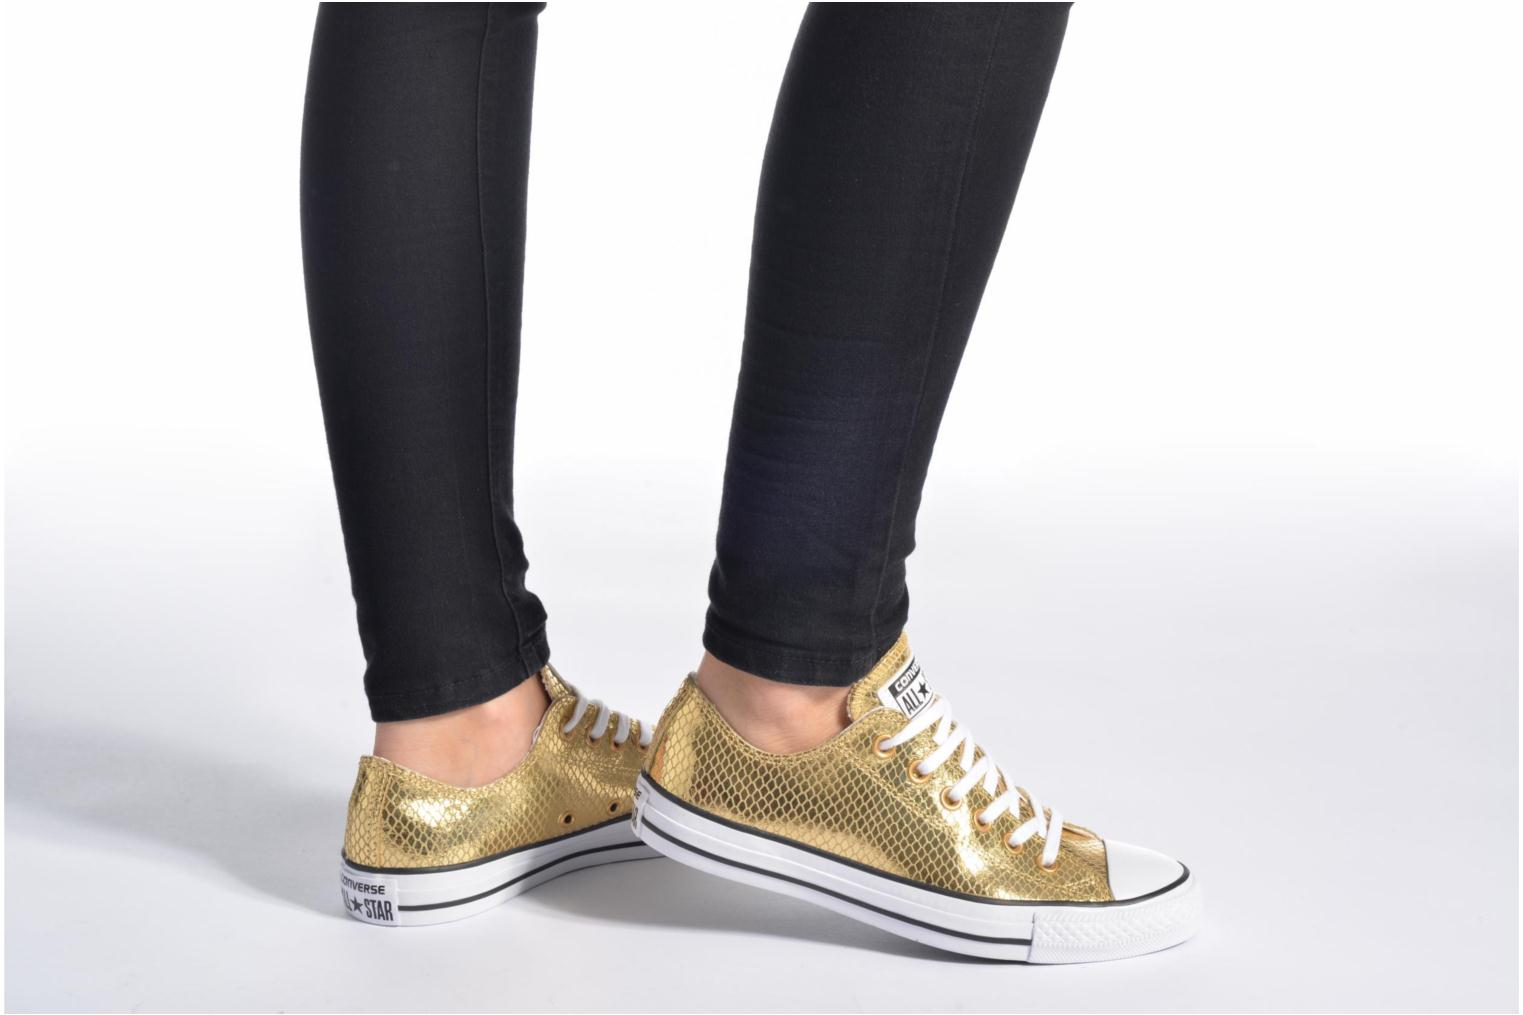 Chuck Taylor All Star Ox Metallic Snake Leather Gold/Black/White